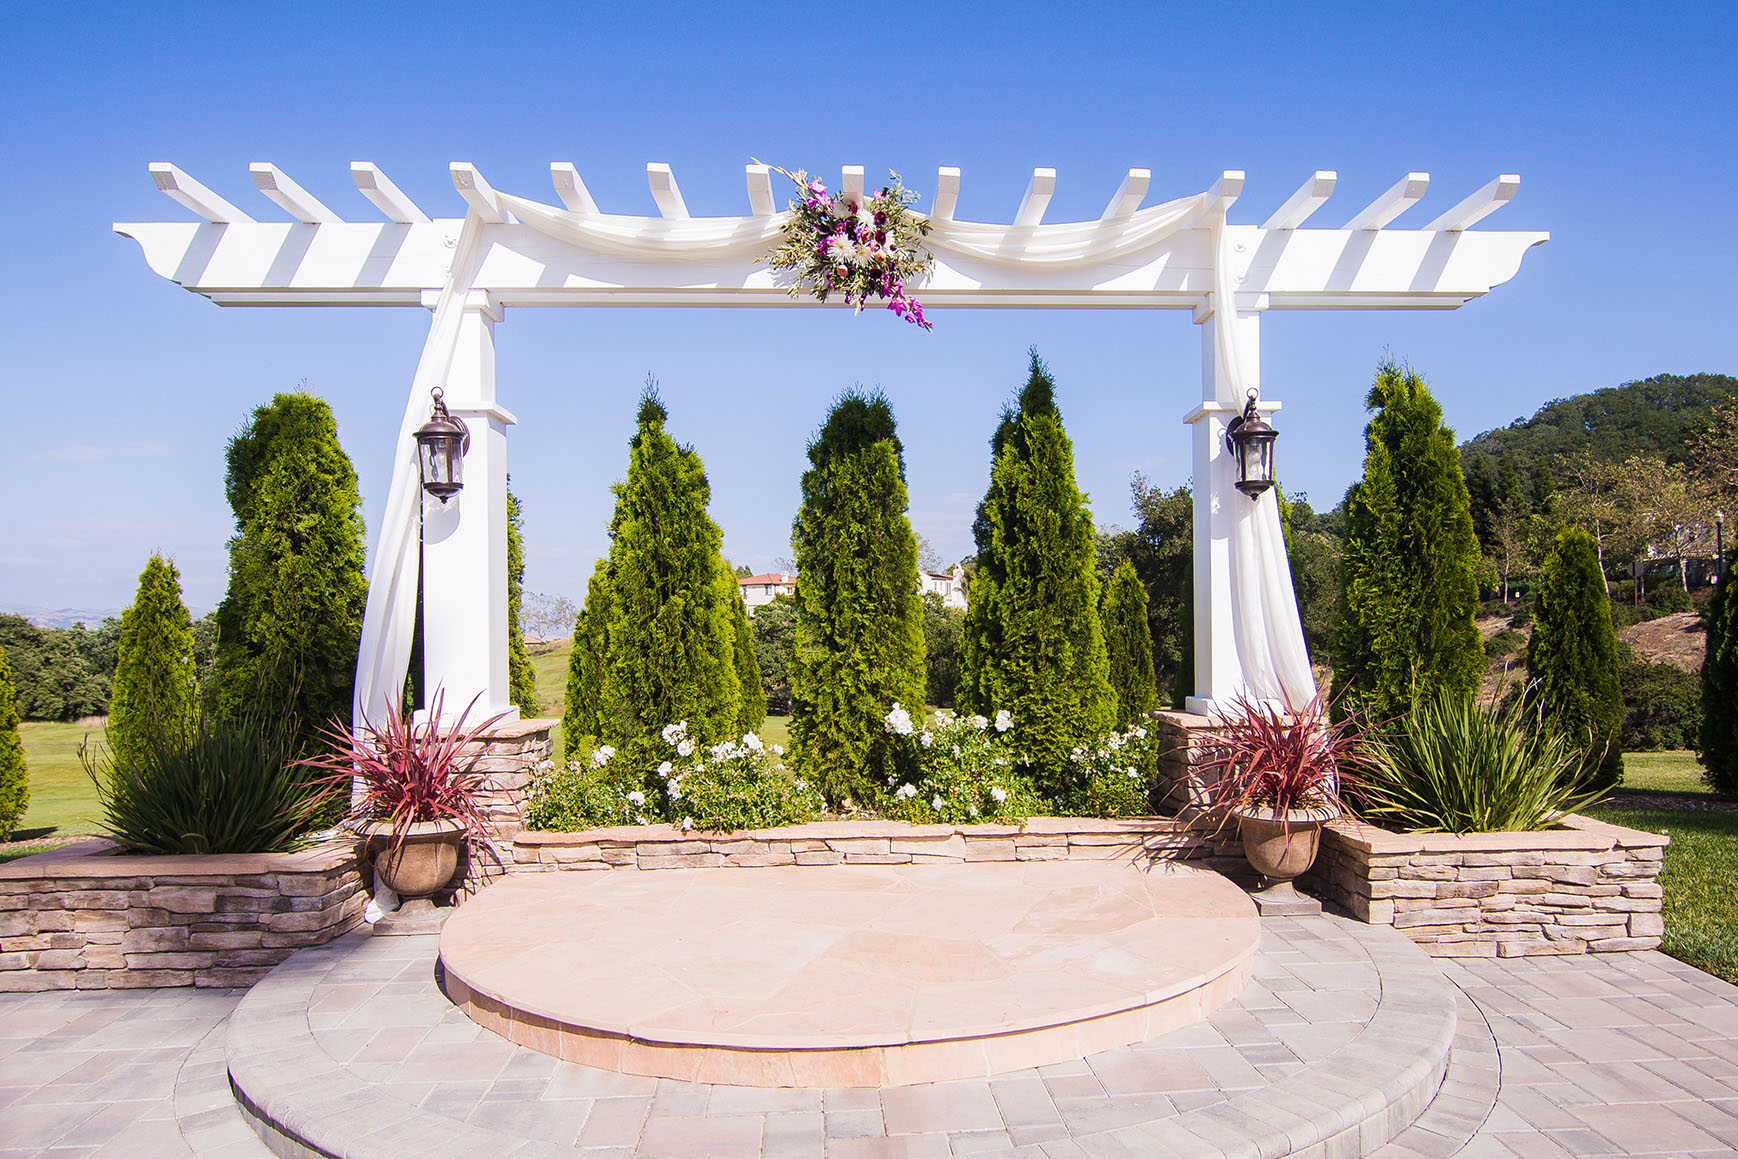 Charming ceremony pergola - Eagle Ridge - Gilroy, California - Santa Clara County - Wedgewood Weddings